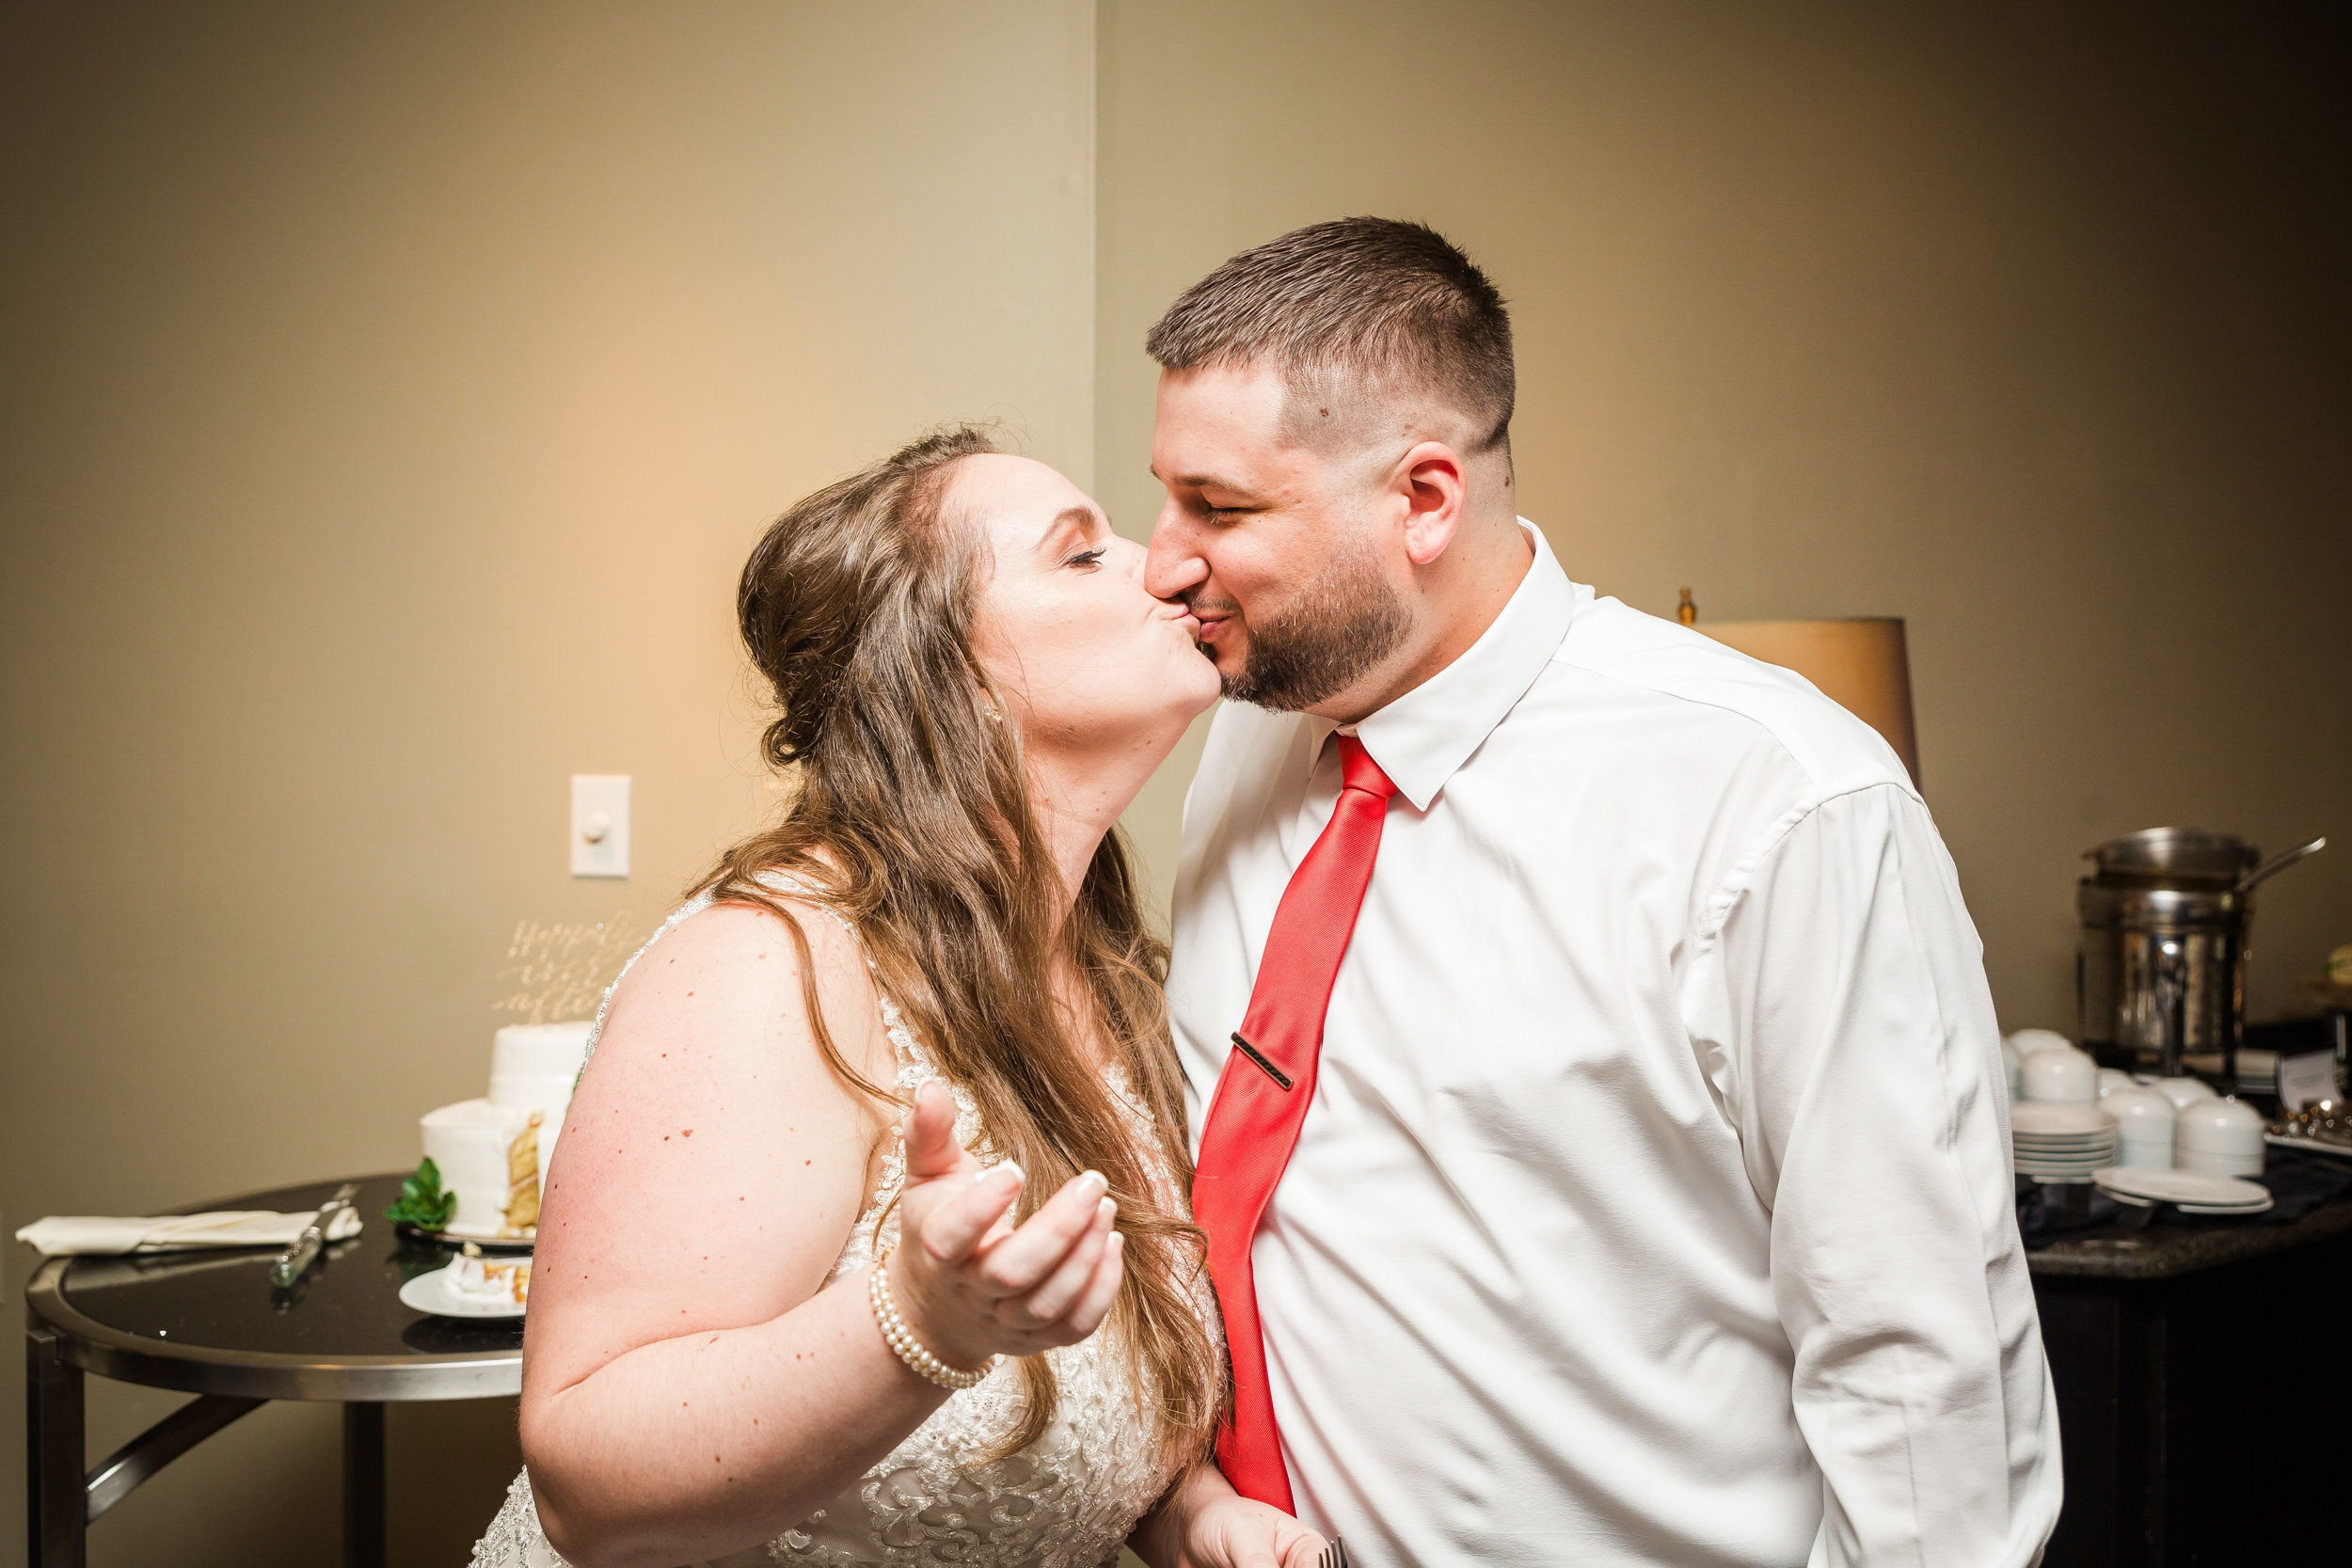 CHAUNCEY HOTEL AND CONFERENCE CENTER WEDDING PHOTOGRAPHY-84.jpg